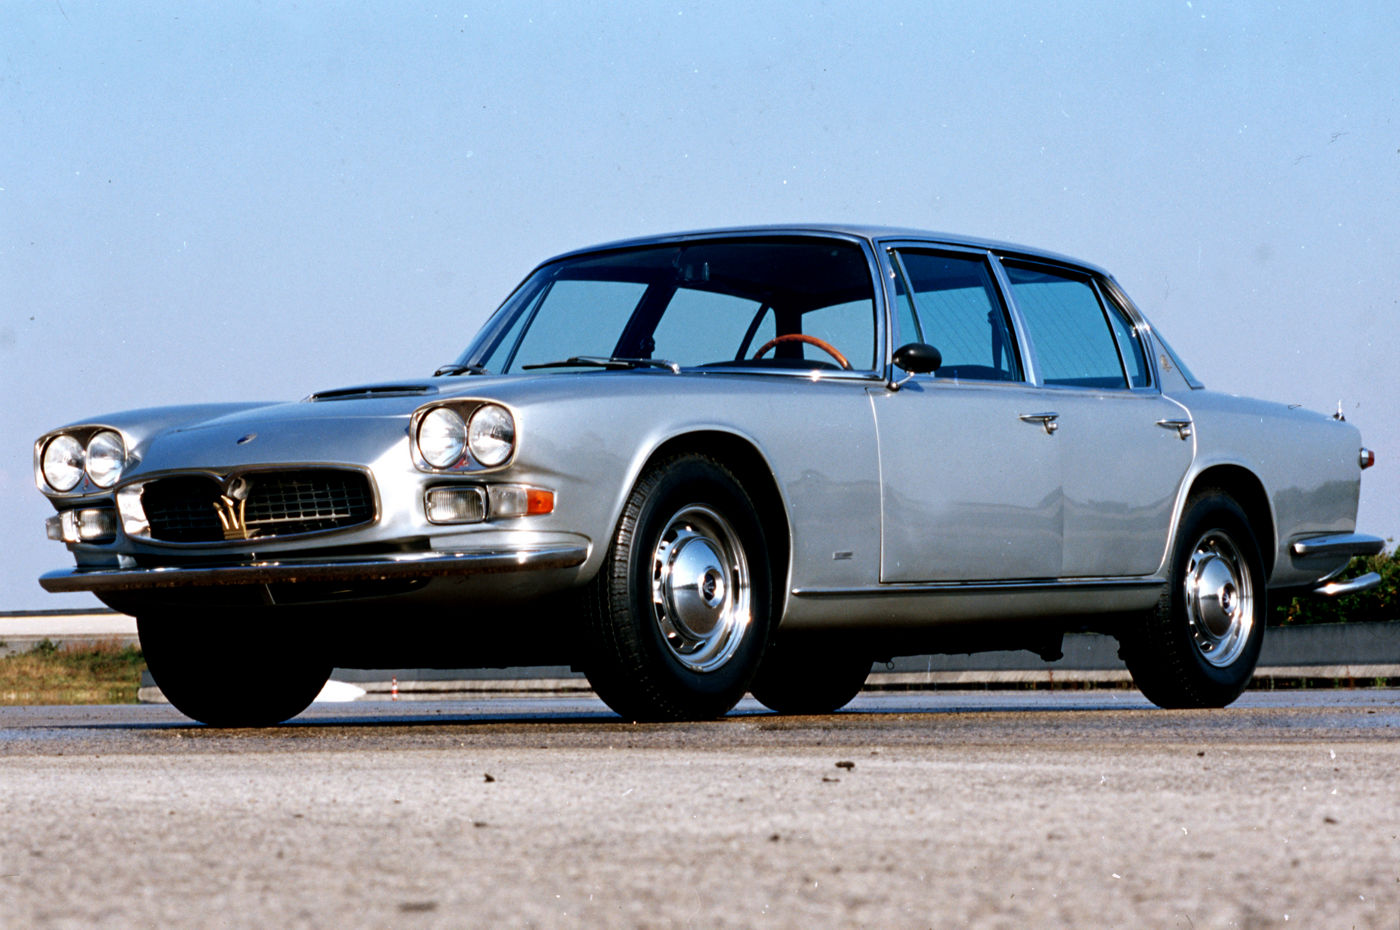 1966 Maserati Quattroporte I - Second Series - exterior view of the 5-seater sedan